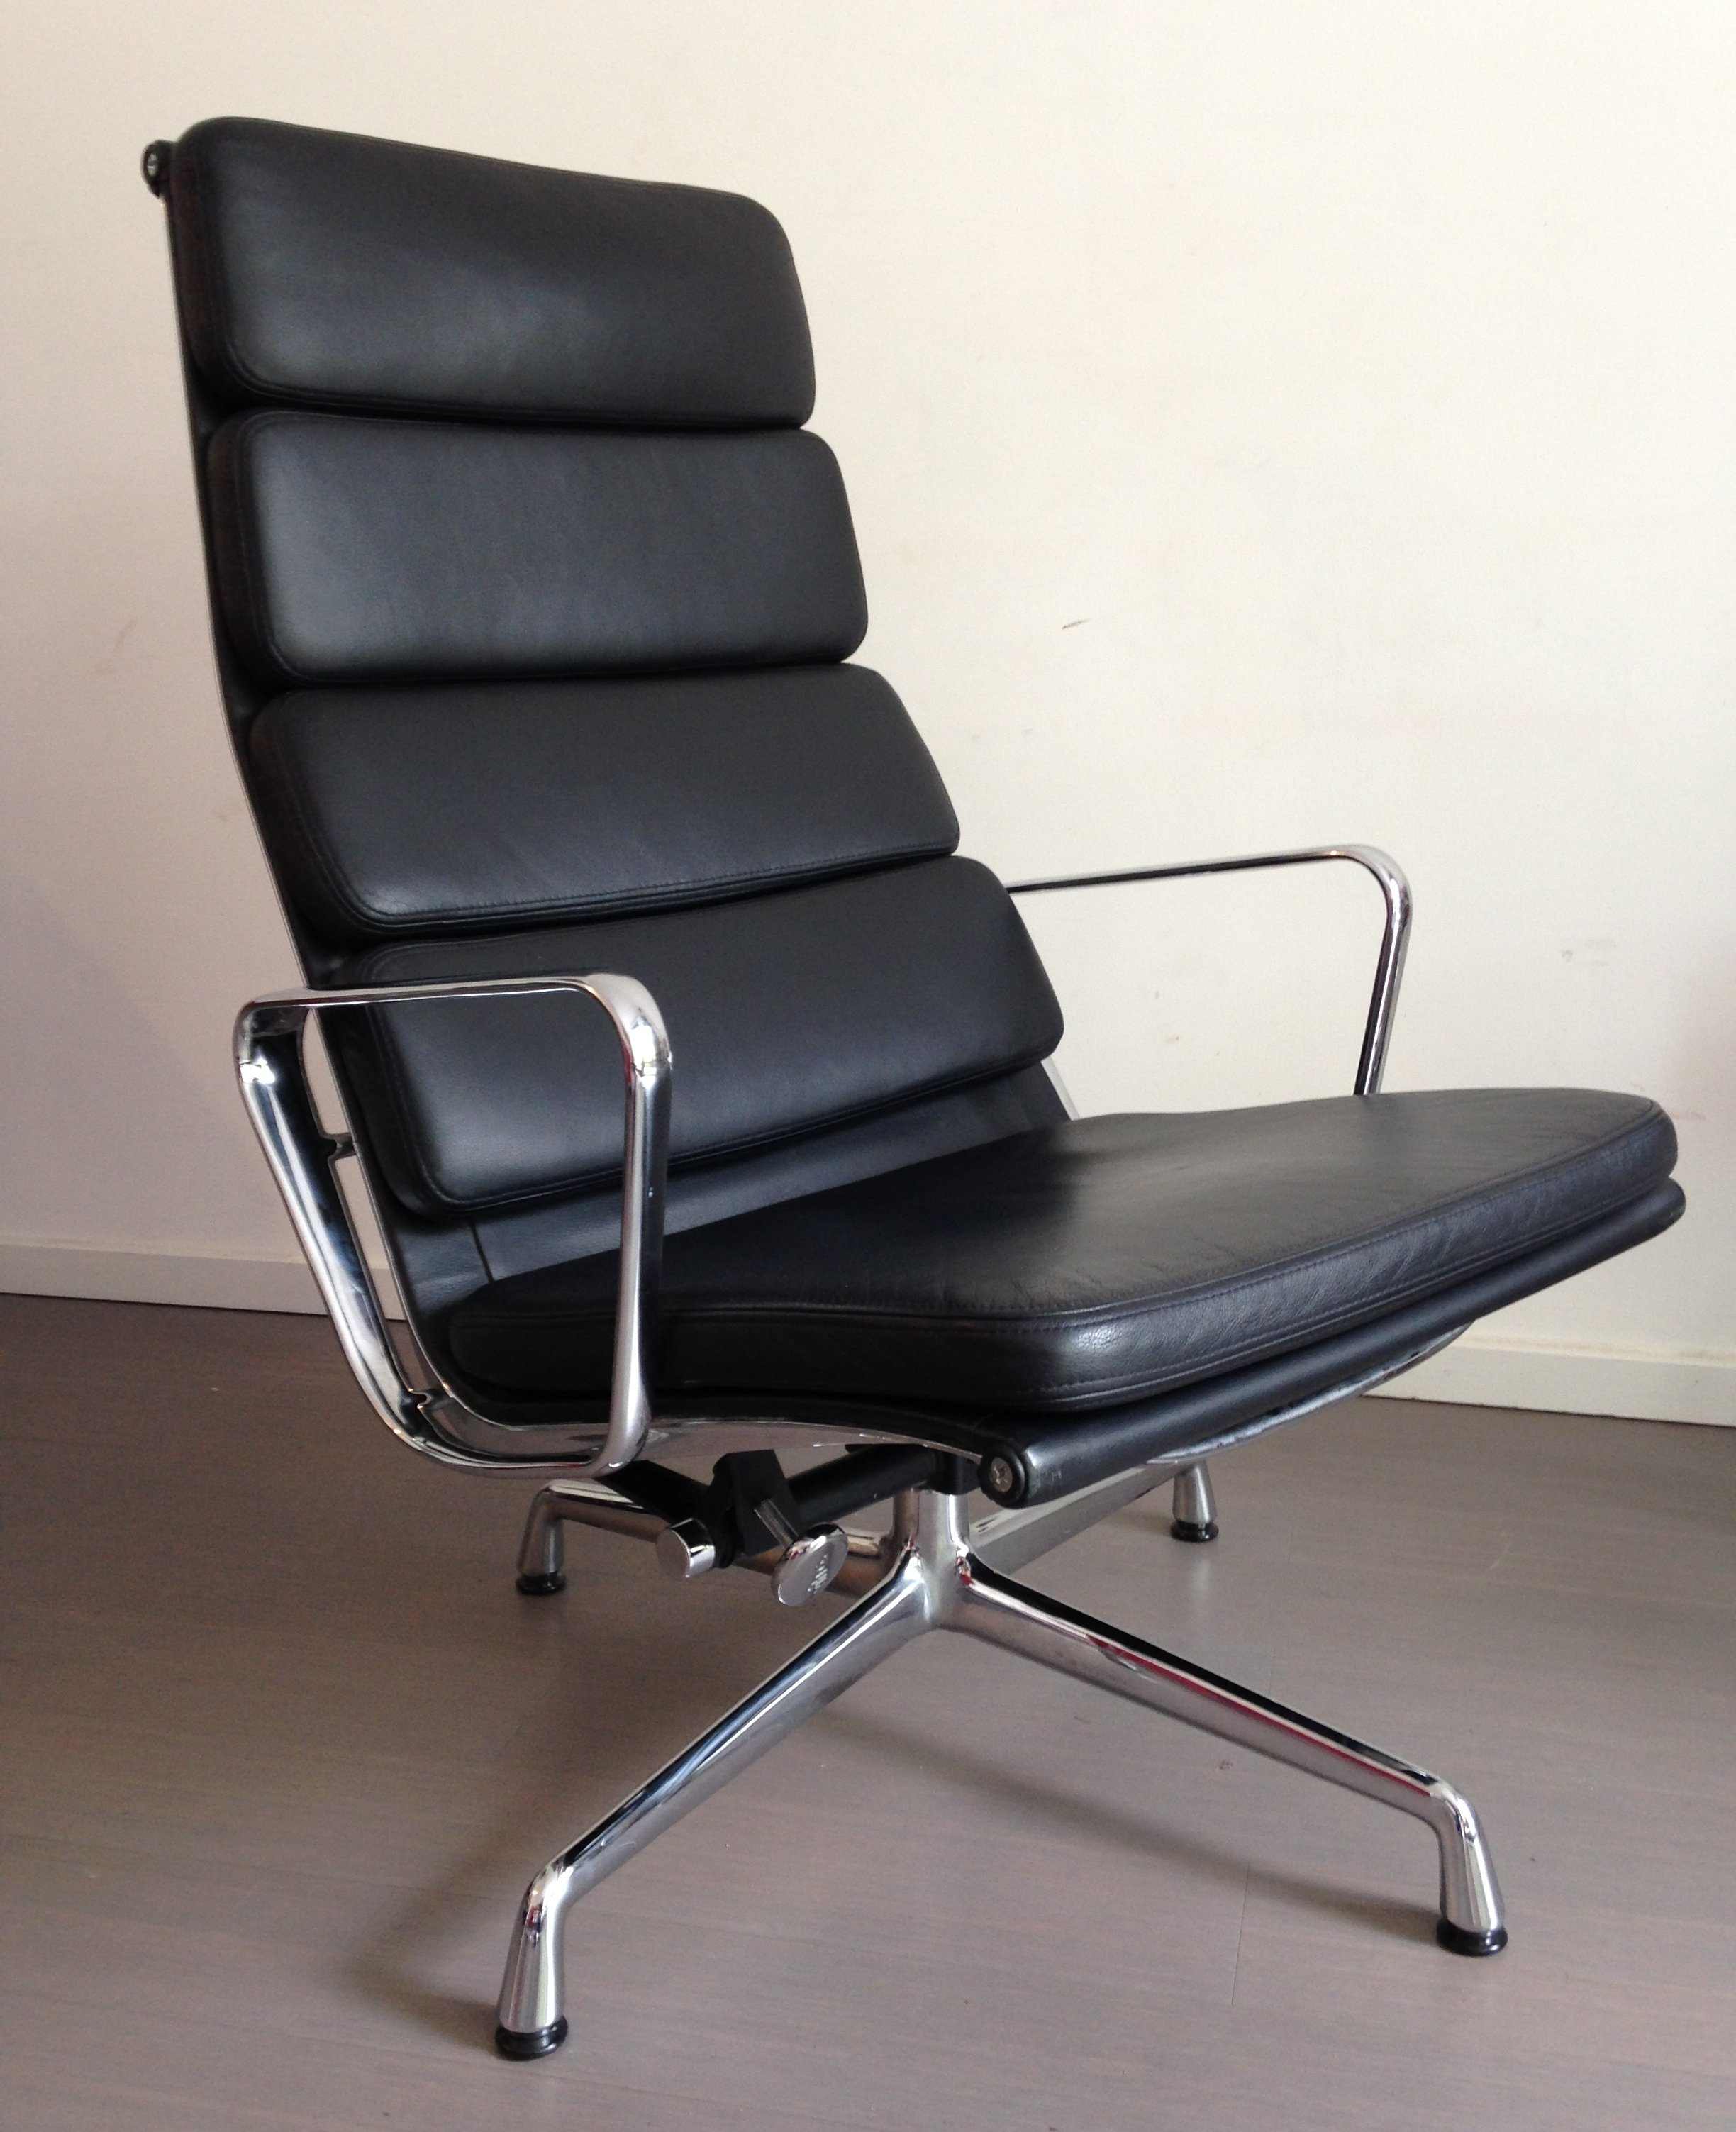 ea222 lounge chair by charles ray eames for vitra 1990s. Black Bedroom Furniture Sets. Home Design Ideas